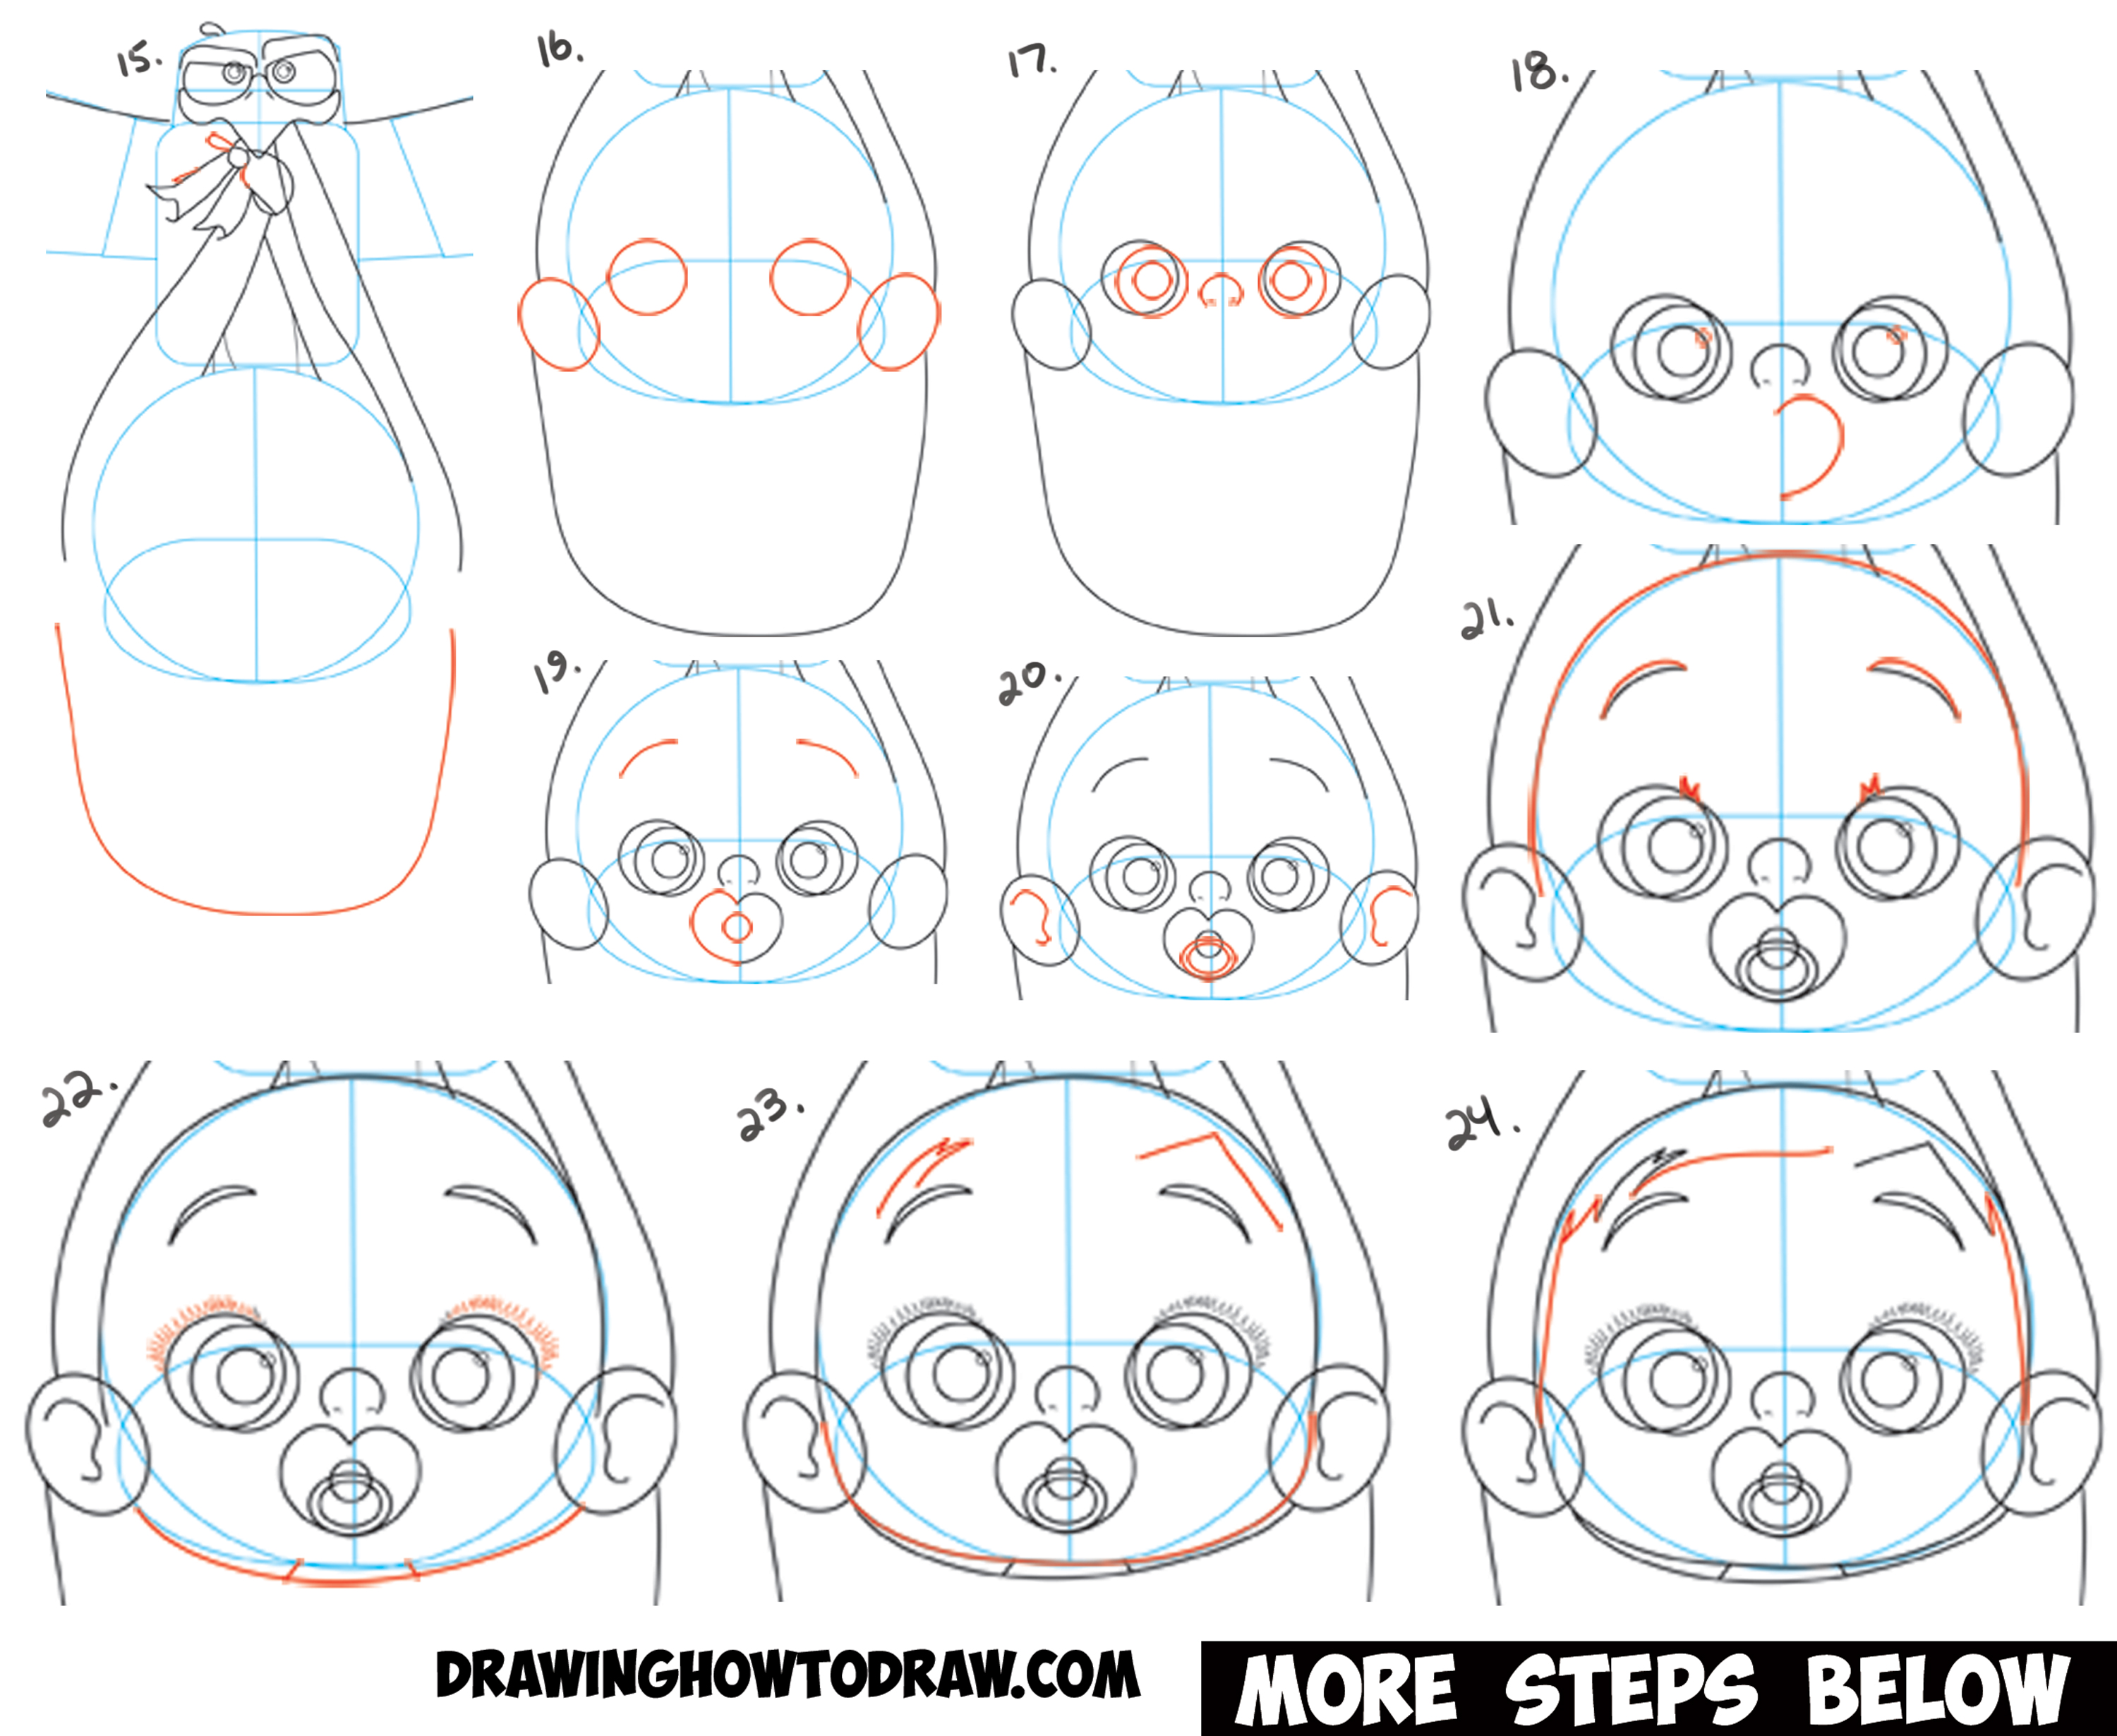 Learn How to Draw The Baby with Pink Hair and the Stork Junior from Storks, the Movie - Simple Steps Drawing Lesson